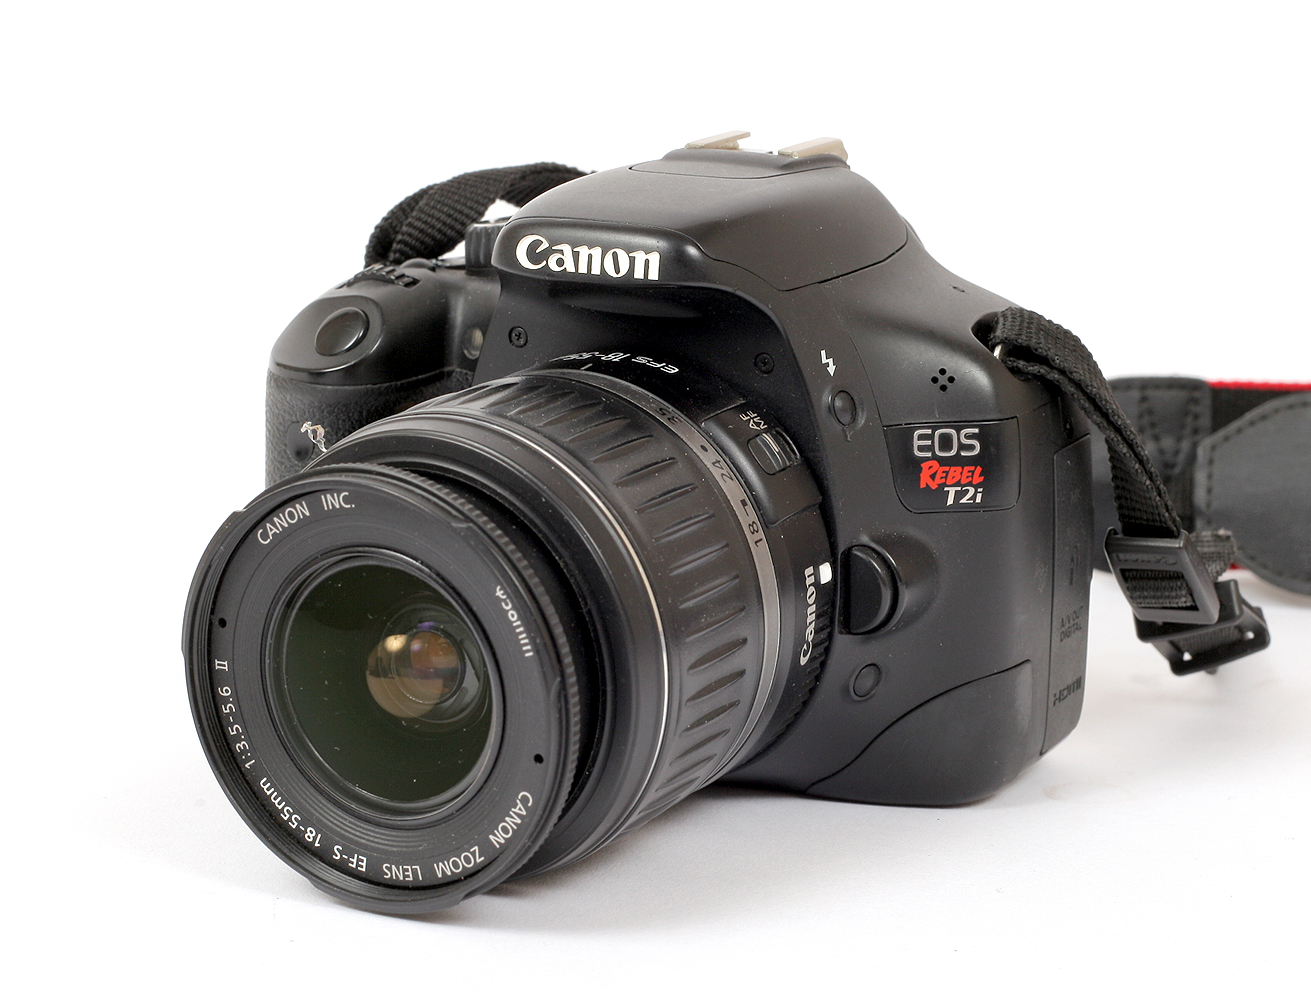 Lot 9 - Canon EOS Rebel T2i DIGITAL Camera, with Sigma 30mm 1.4 lens. (condition 5E).